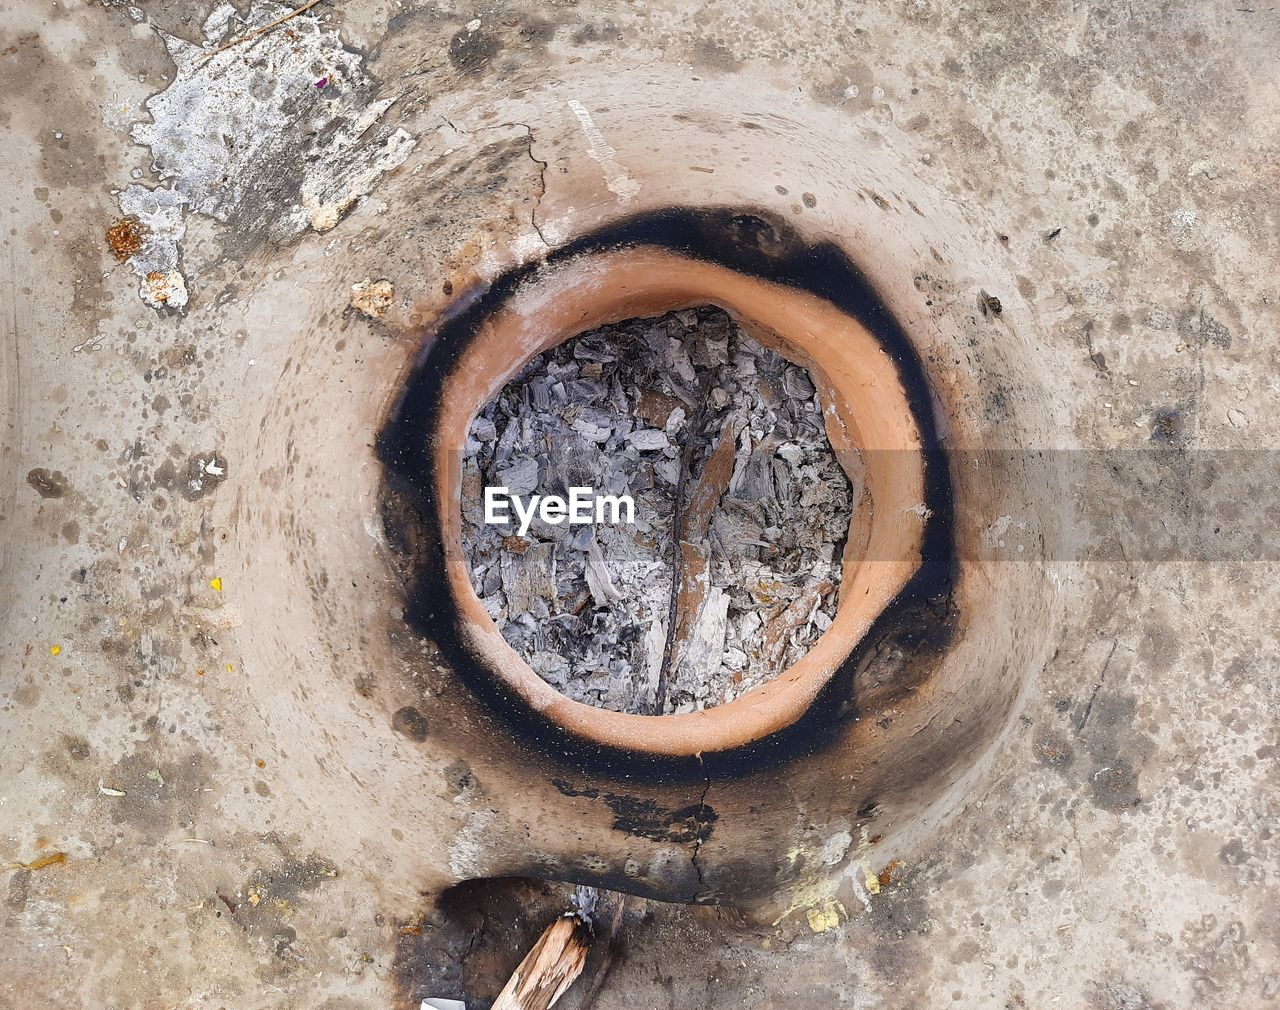 HIGH ANGLE VIEW OF OLD HOLE ON METAL